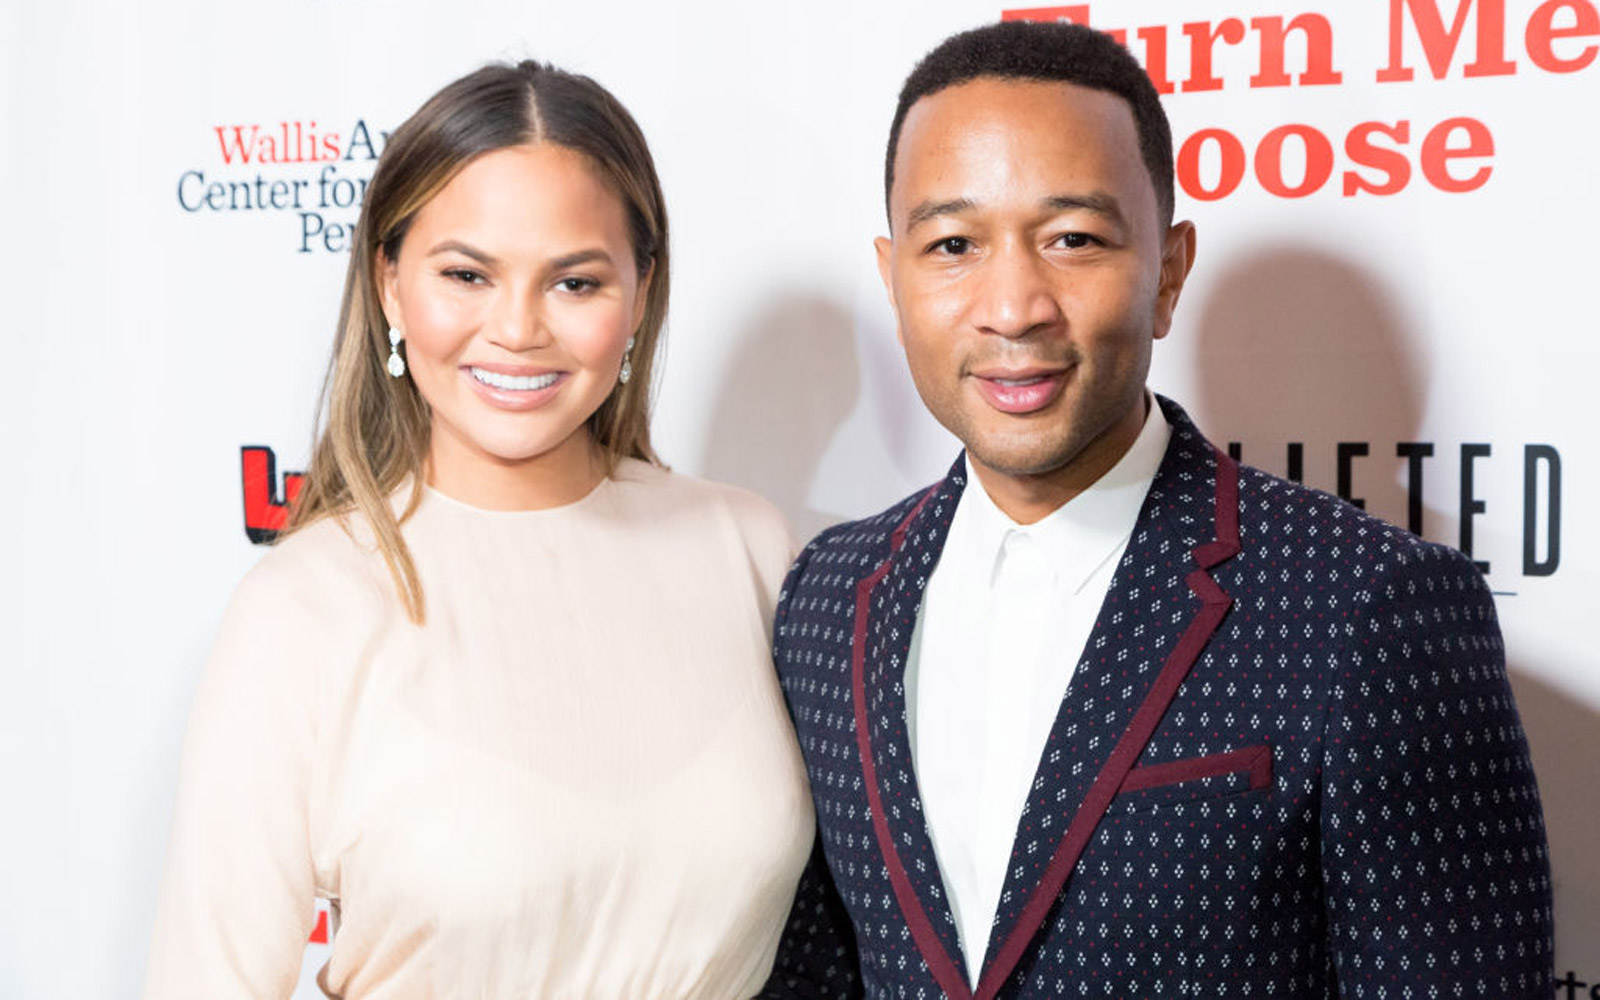 Chrissy Teigen Just Announced She and John Legend Are Expecting a Second Child